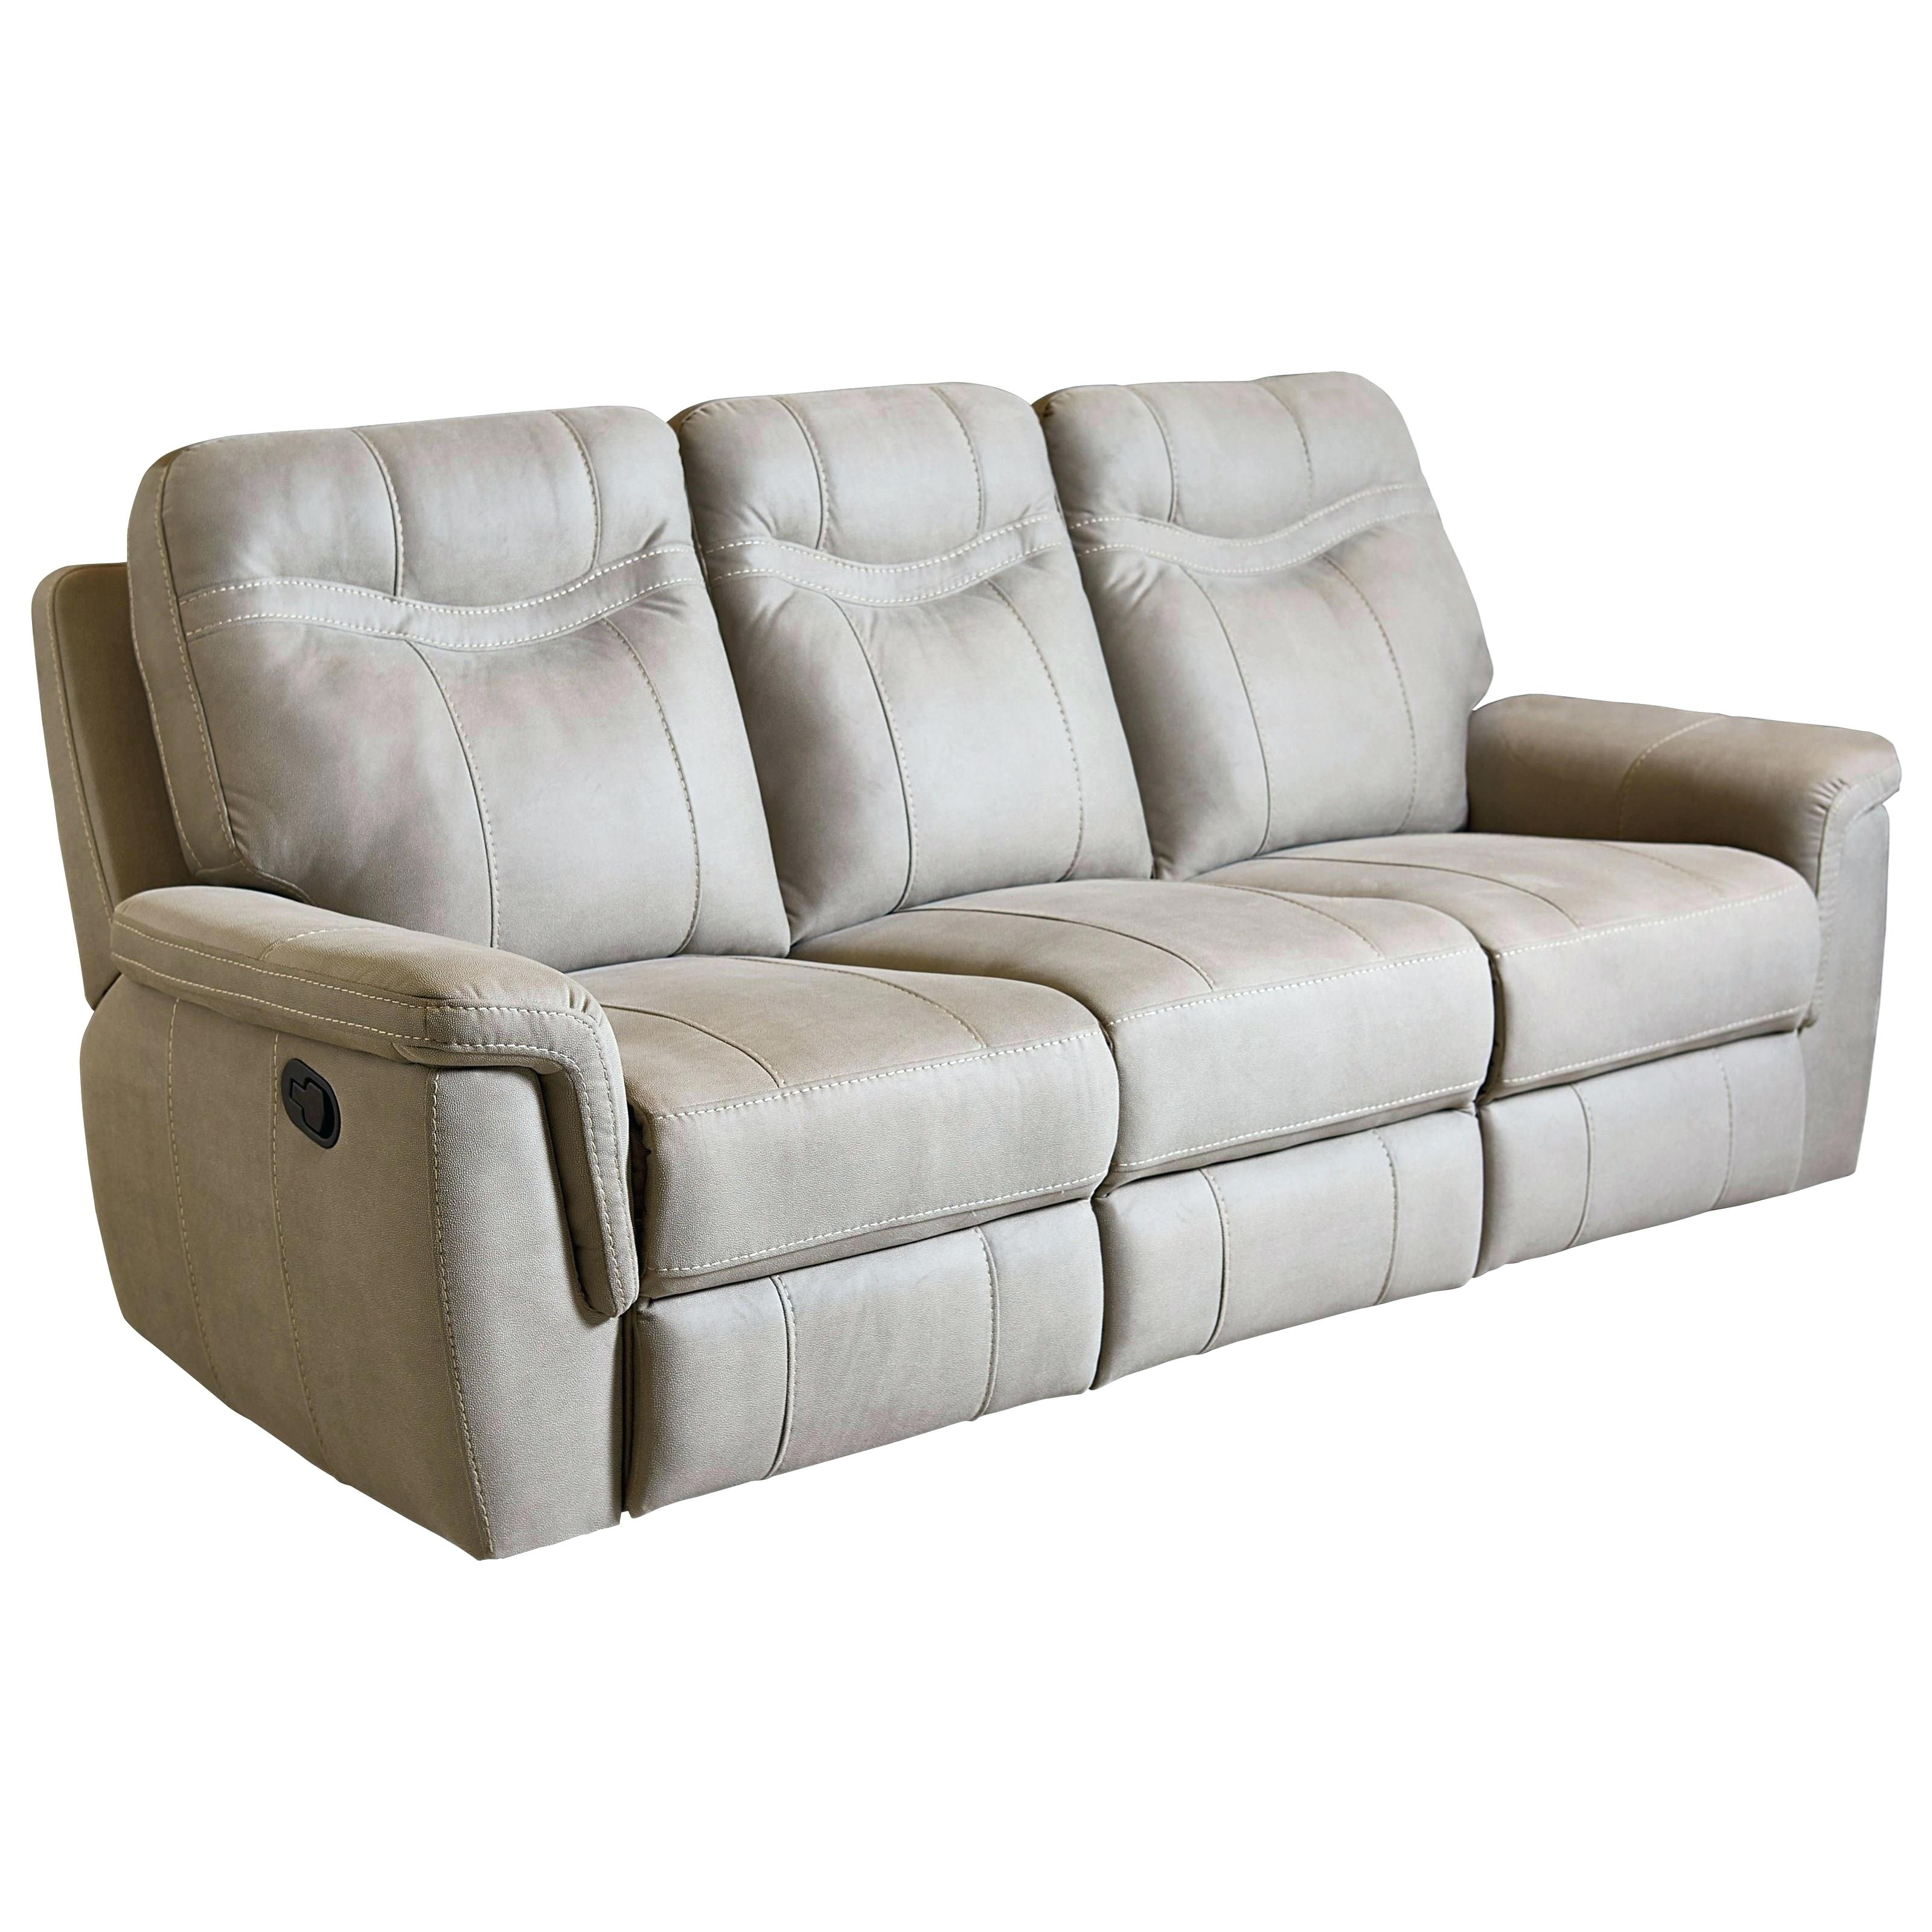 Sectional Sofas In London Ontario